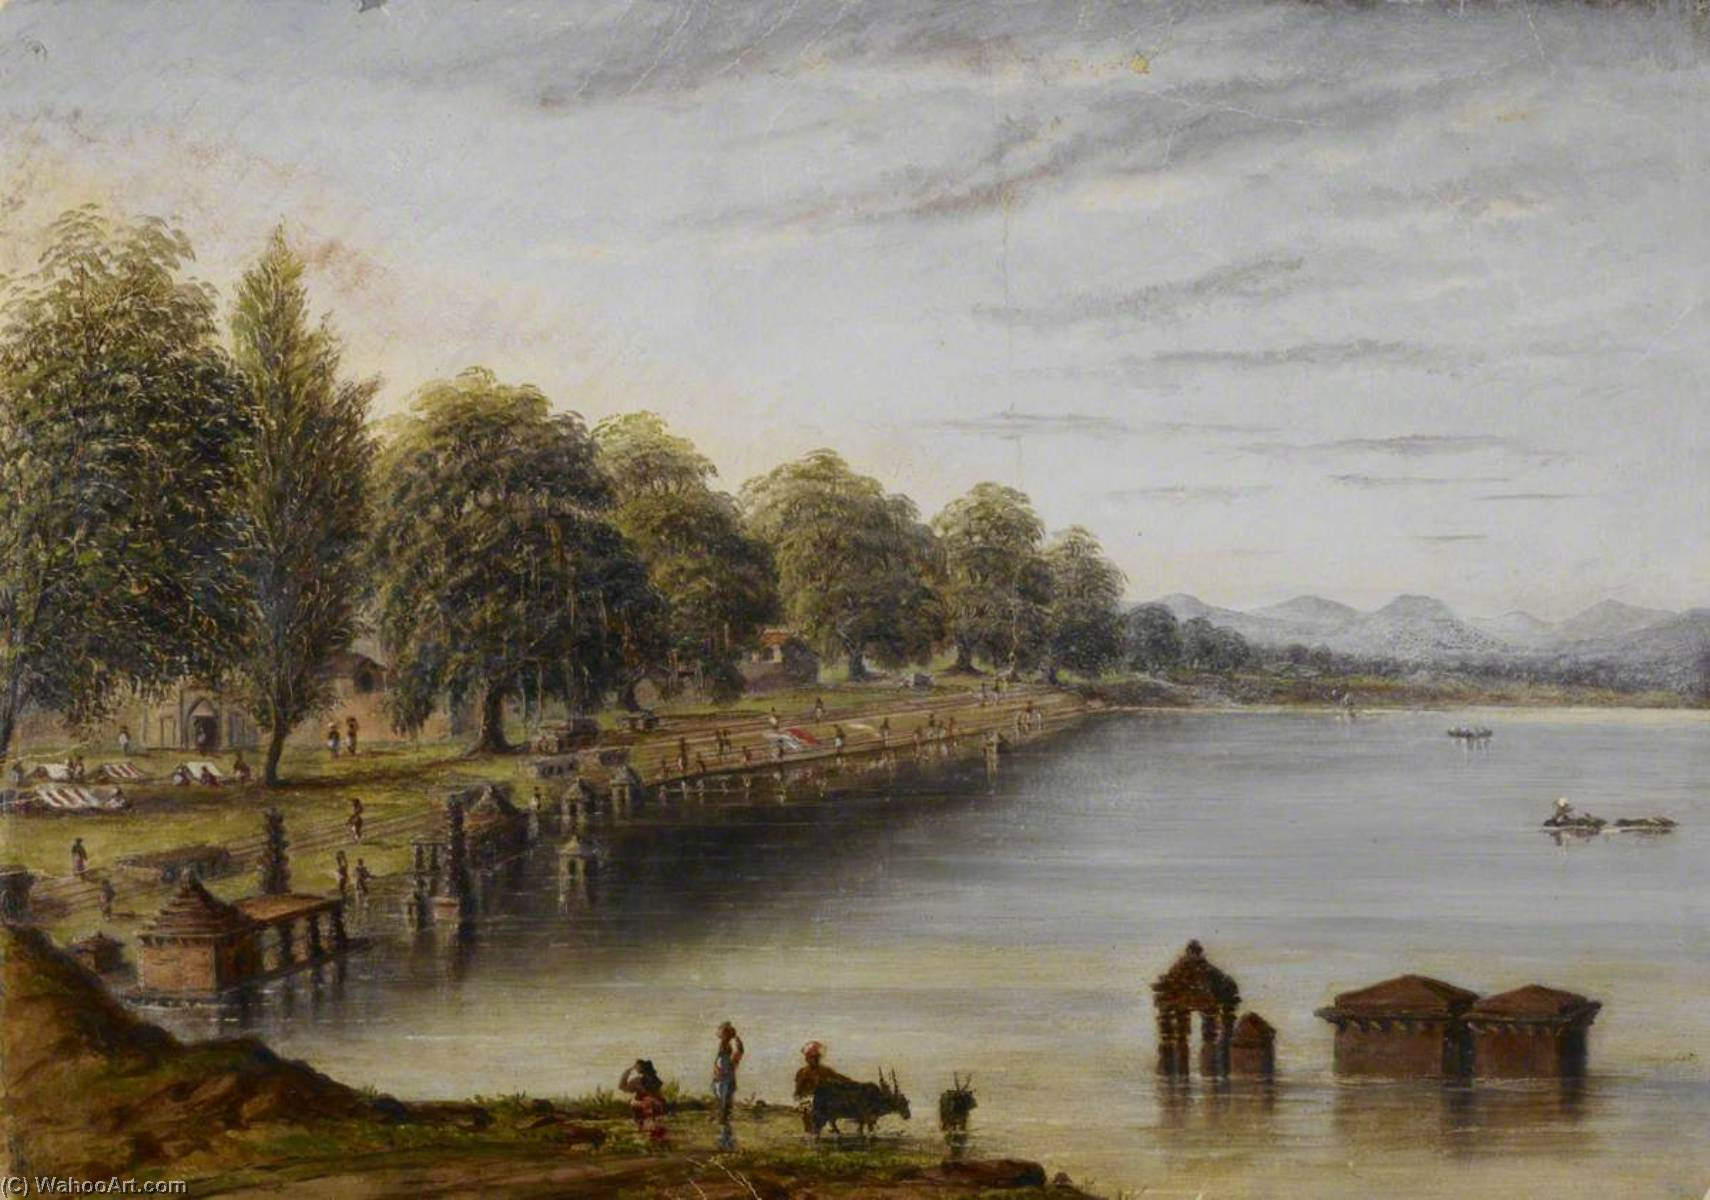 Achat Copie Tableau : River et Ghâts au Kolhapur, 1877 de William Robert Houghton | WahooArt.com